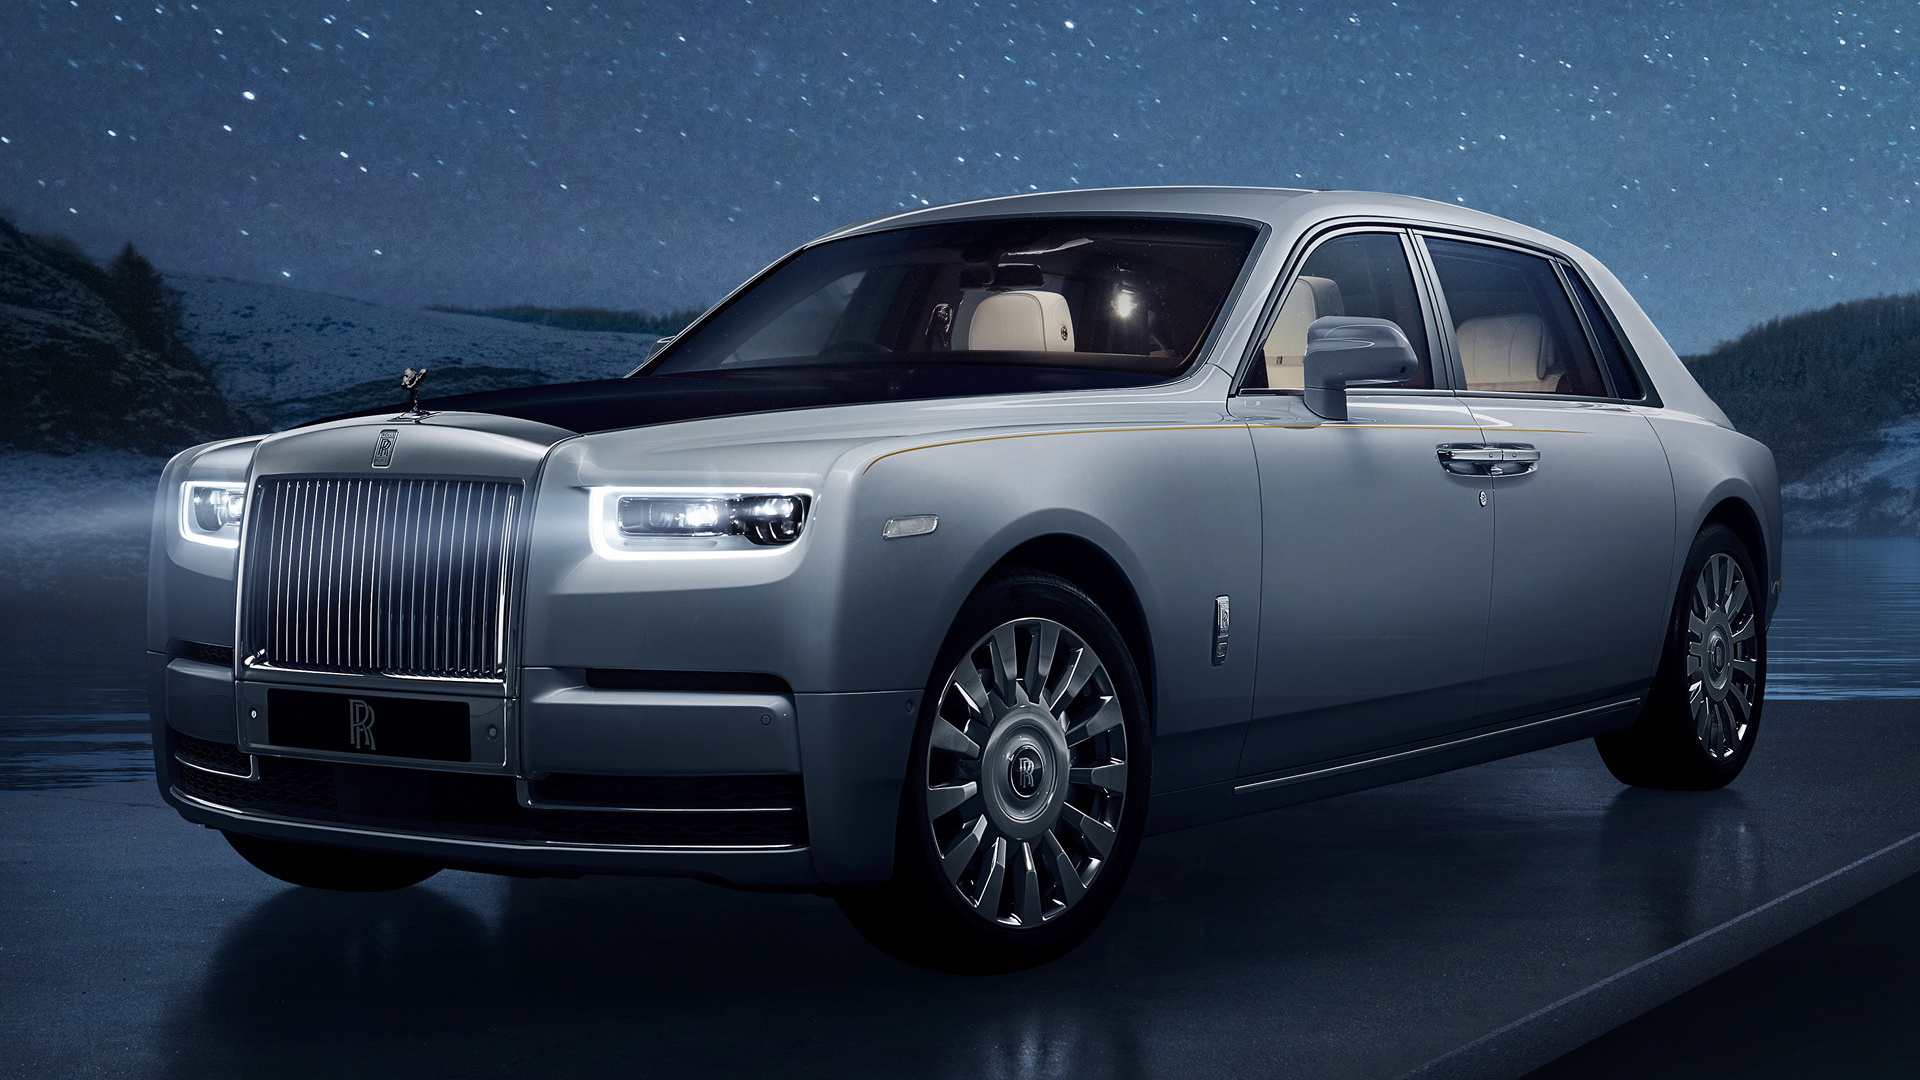 Rolls Royce Phantom Tranquillity Wallpaper Hd